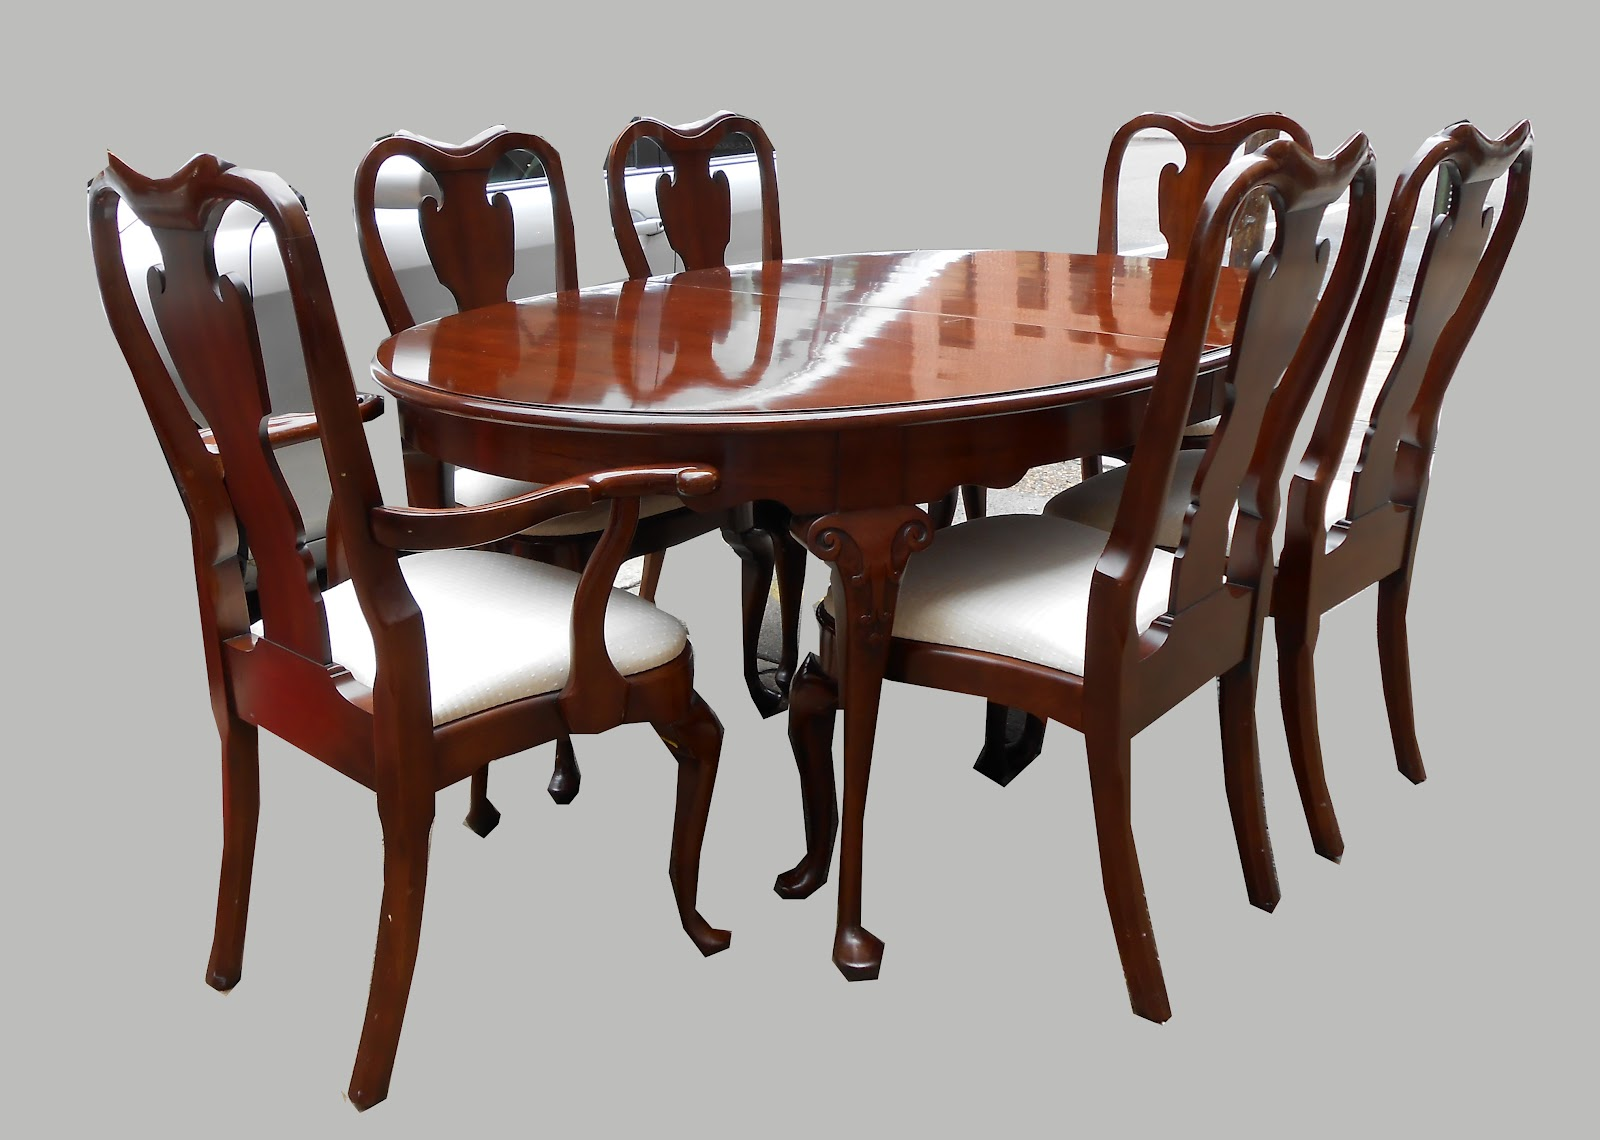 Uhuru Furniture Collectibles Queen Anne Style Dining Table 6 Chairs